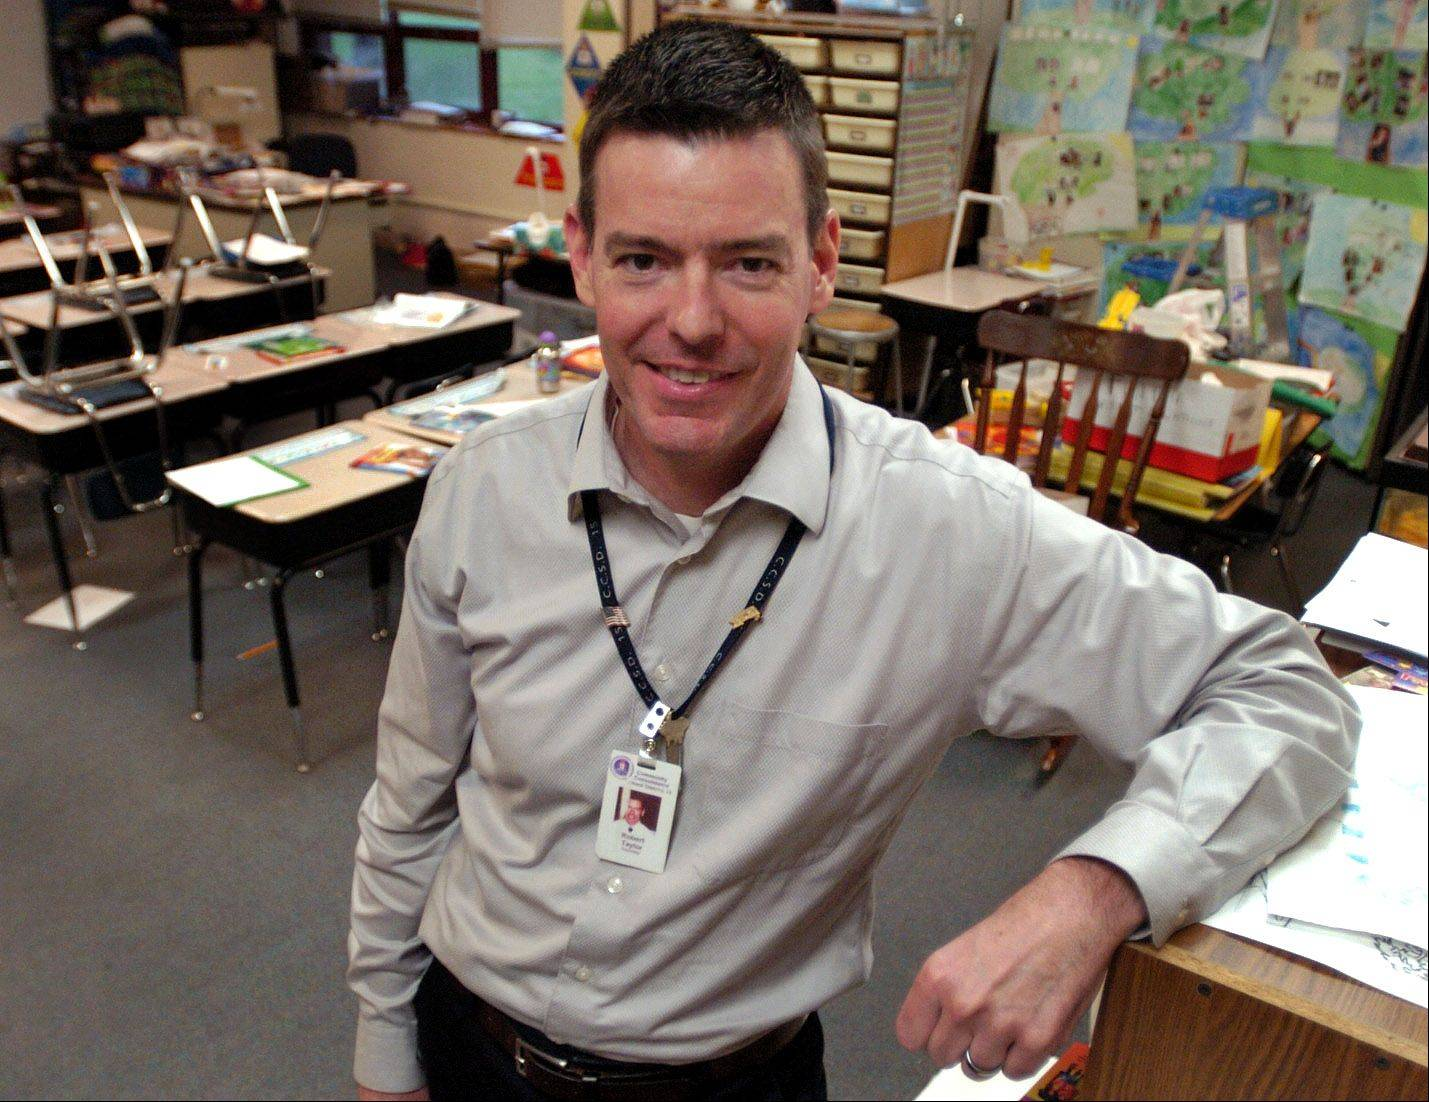 Golden Apple finalist second-grade teacher Rob Taylor works at Central Road School in Rolling Meadows.